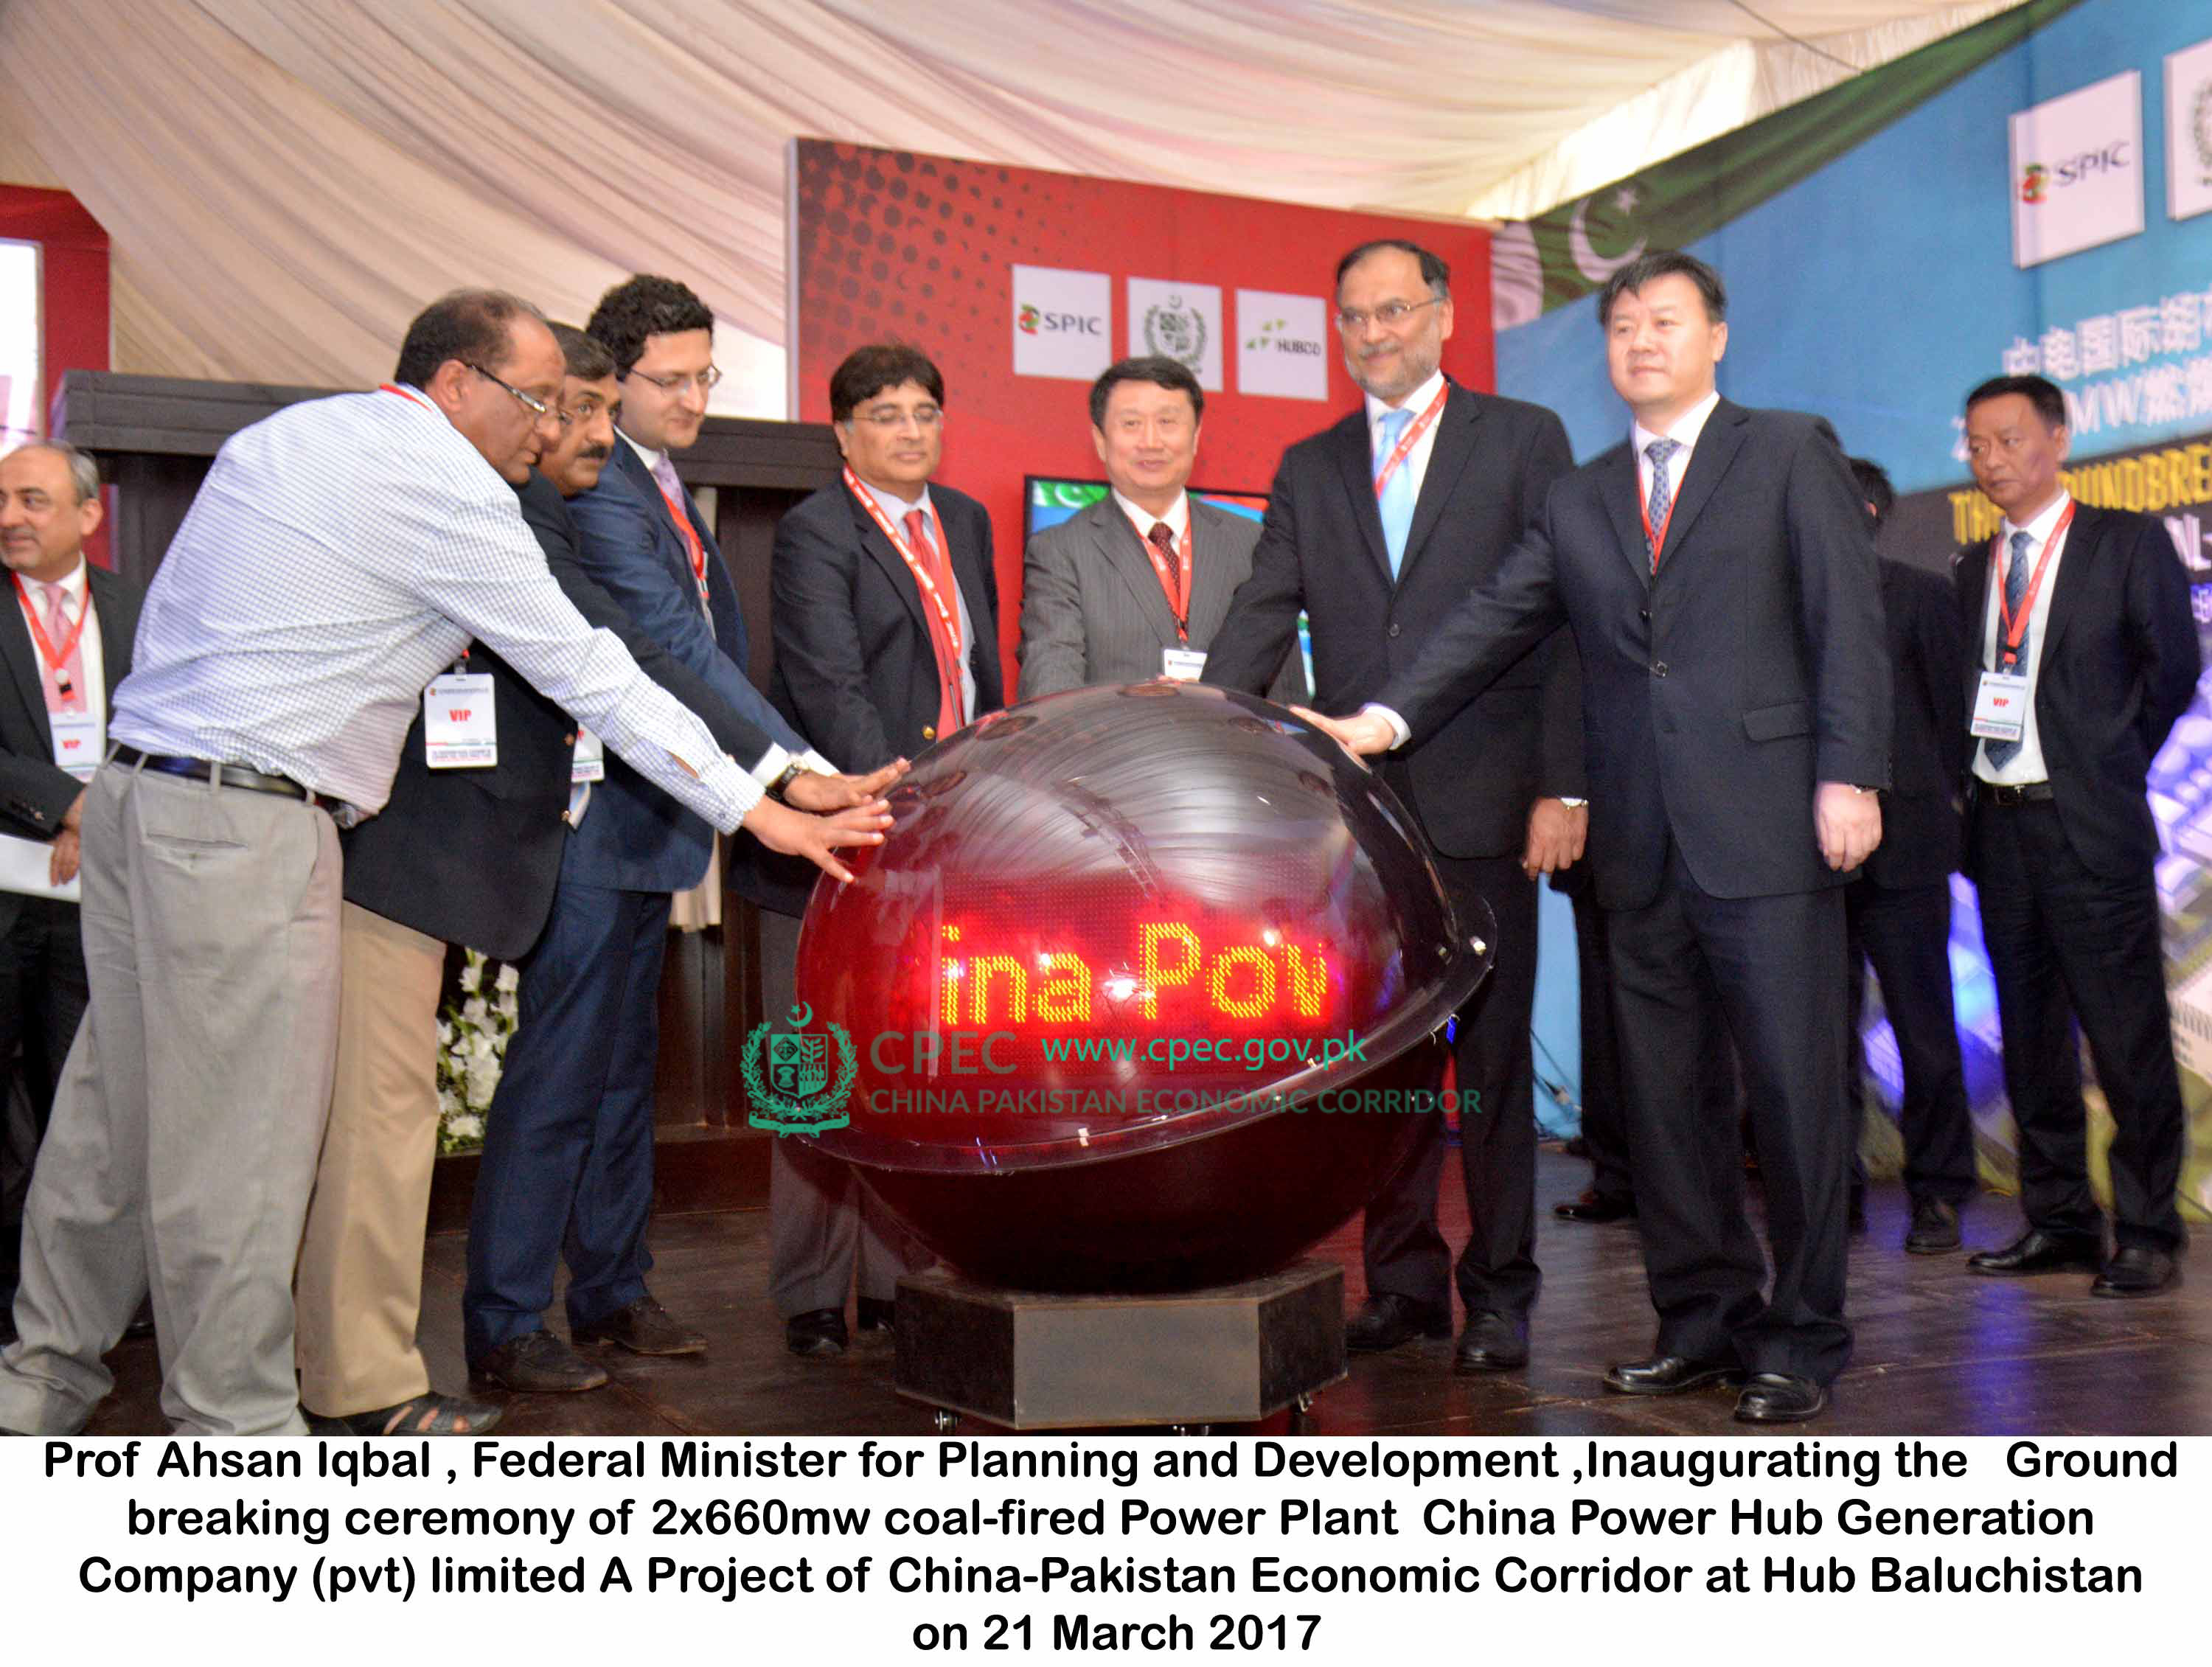 CPHGC 1,320MW Coal-fired Power Plant, Hub,Balochistan